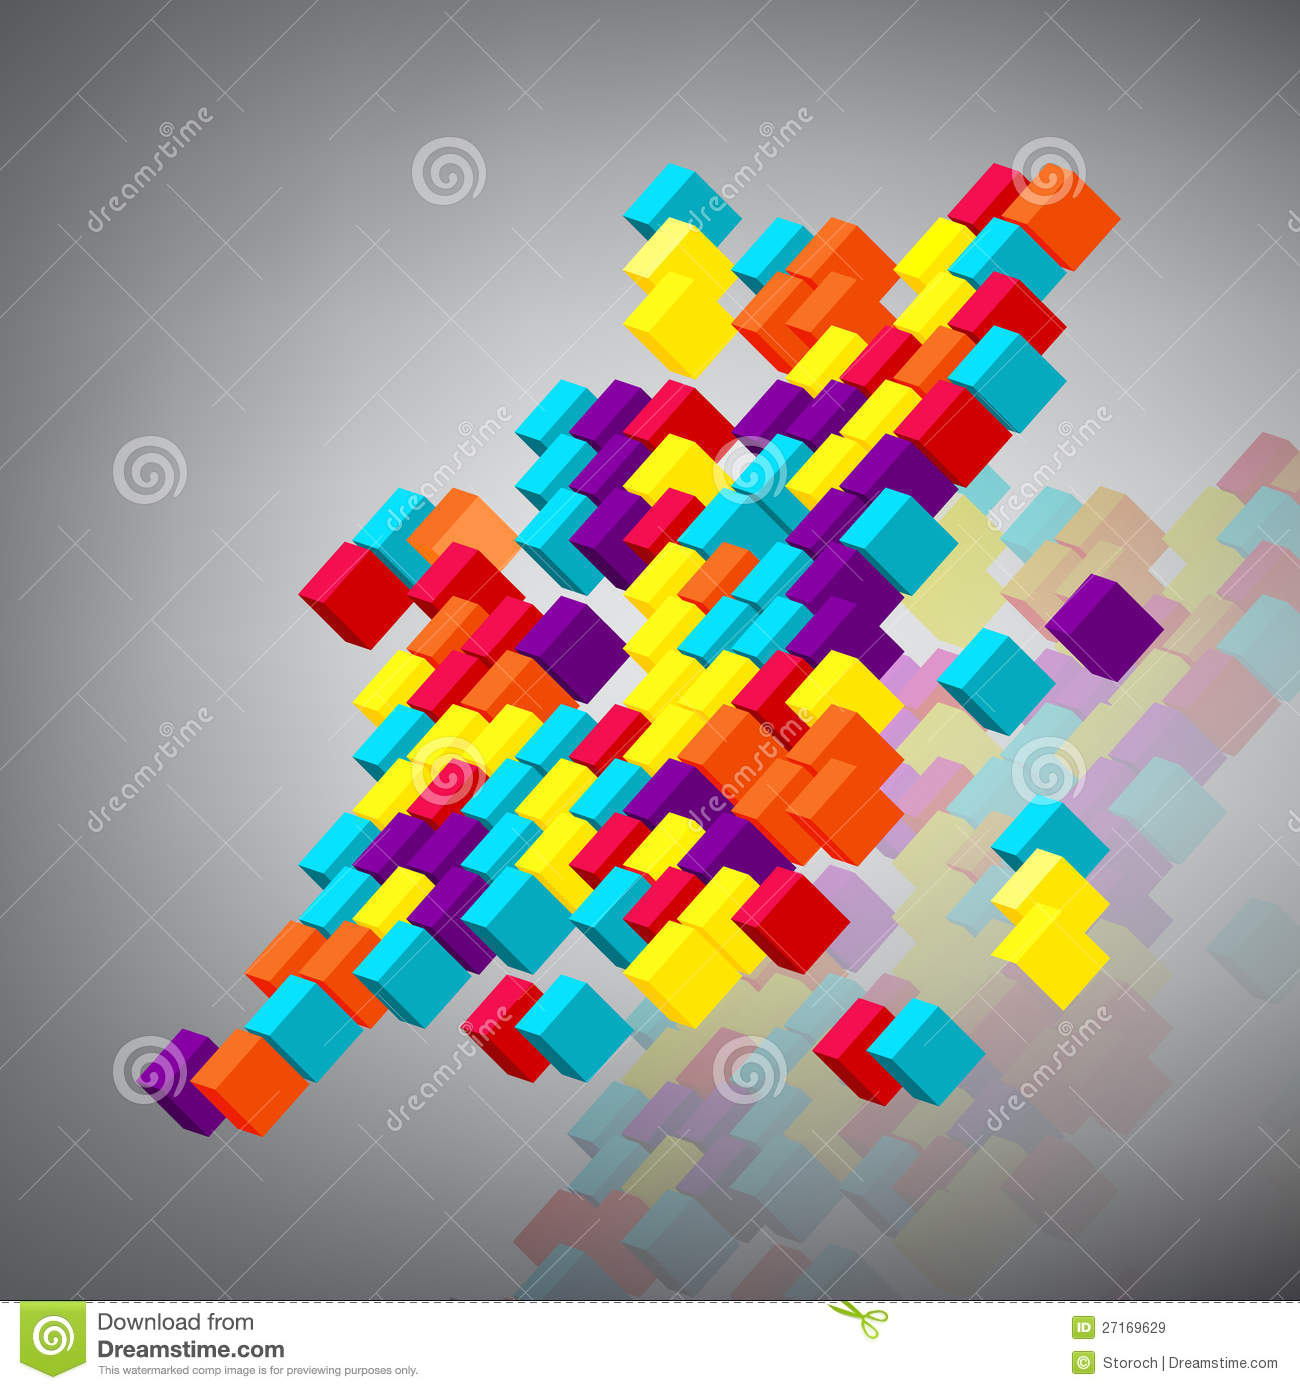 3d abstract cubes background - photo #20